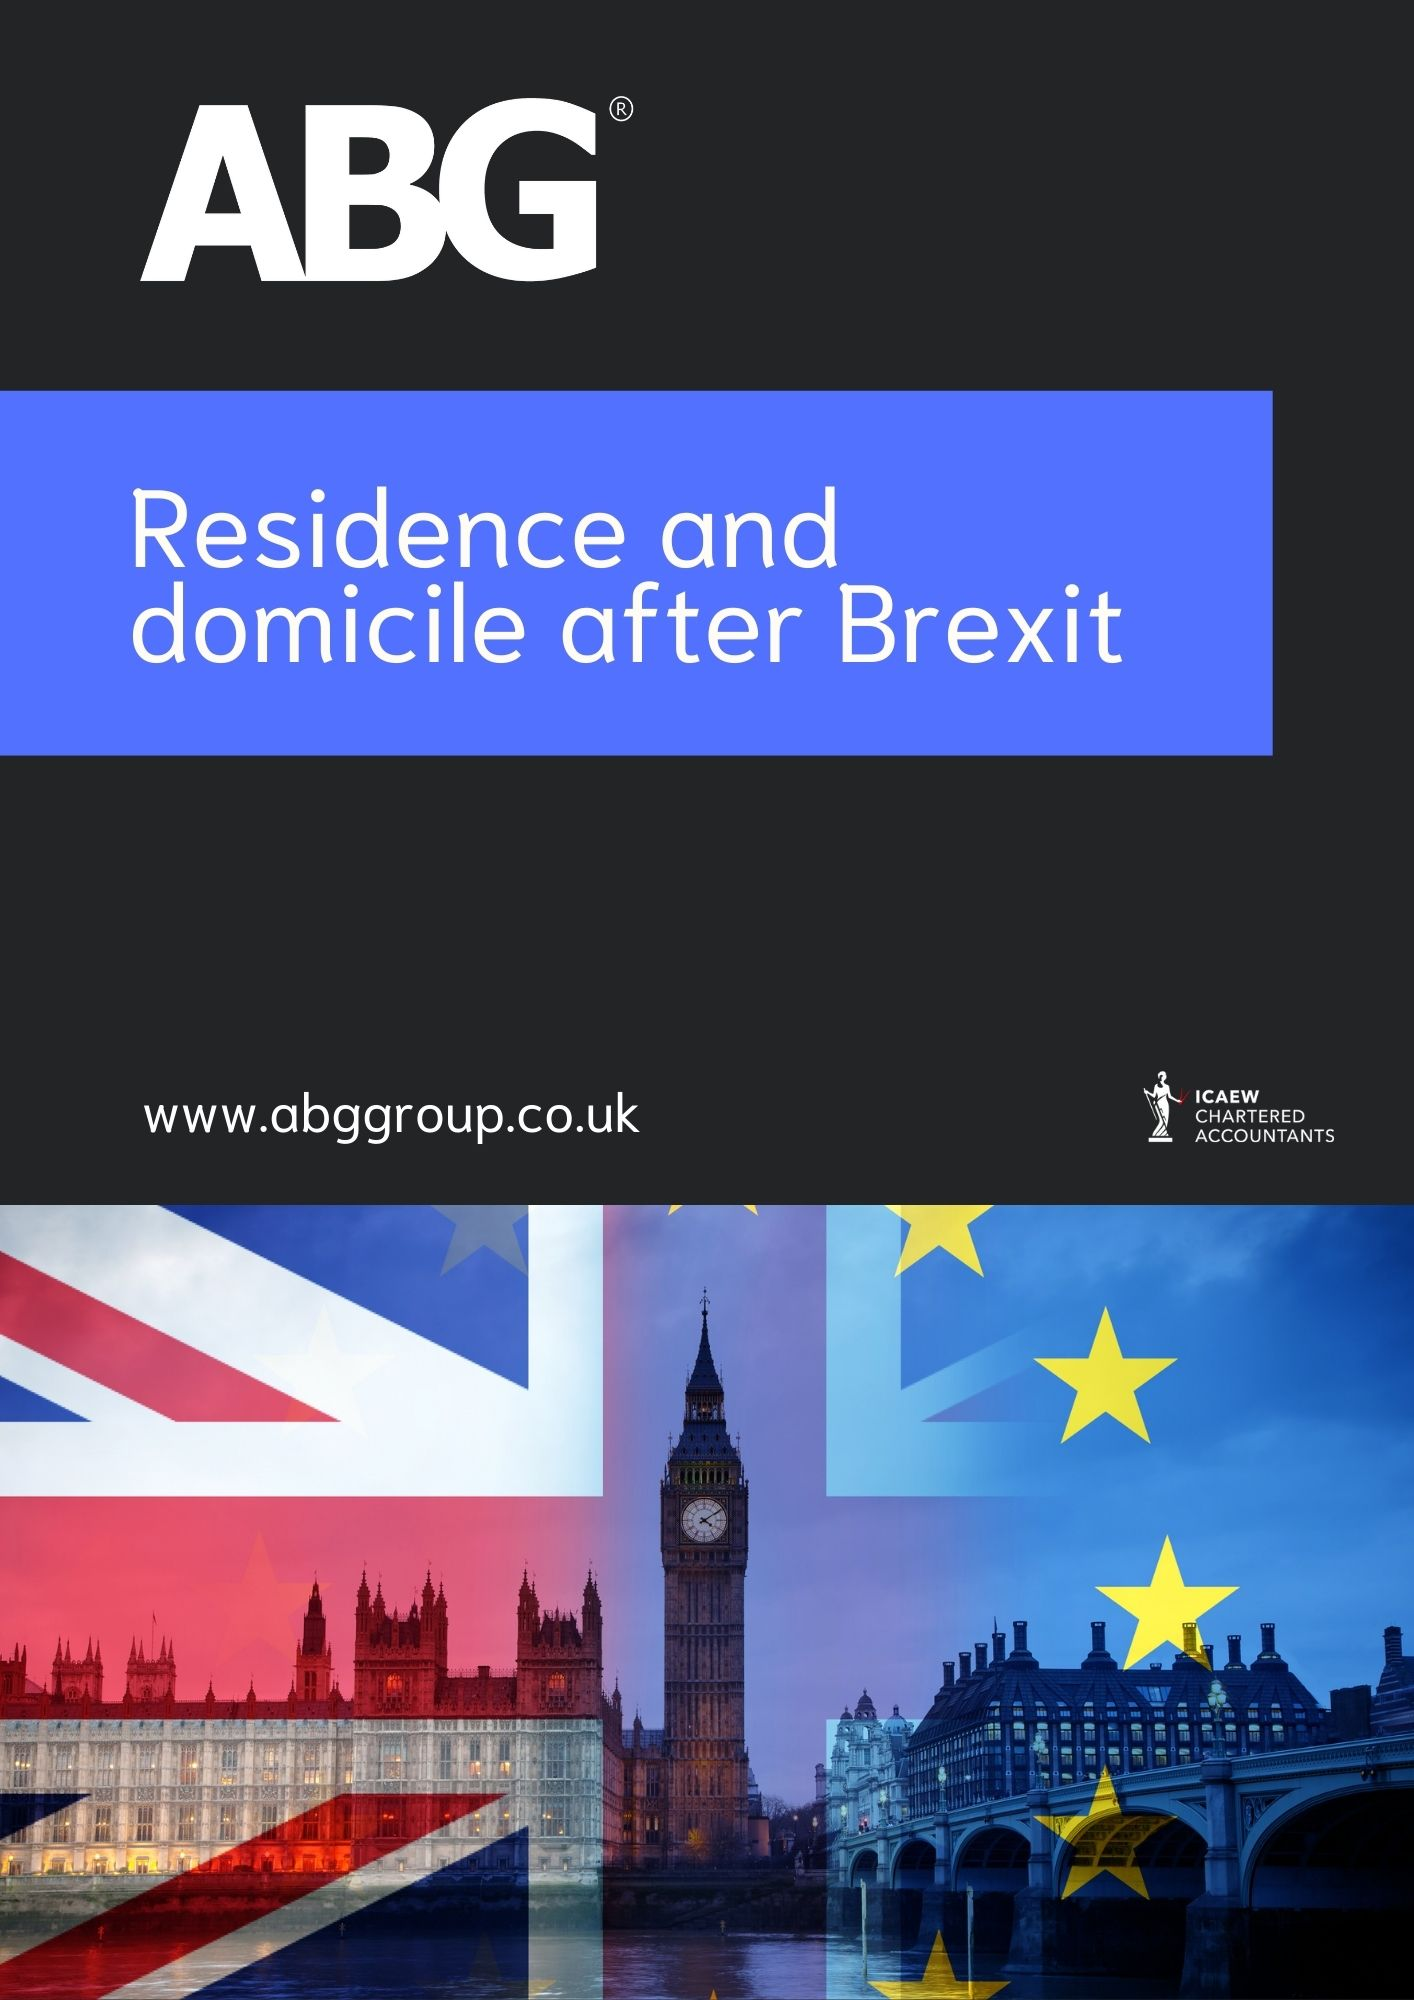 Residence and domicile after brexit